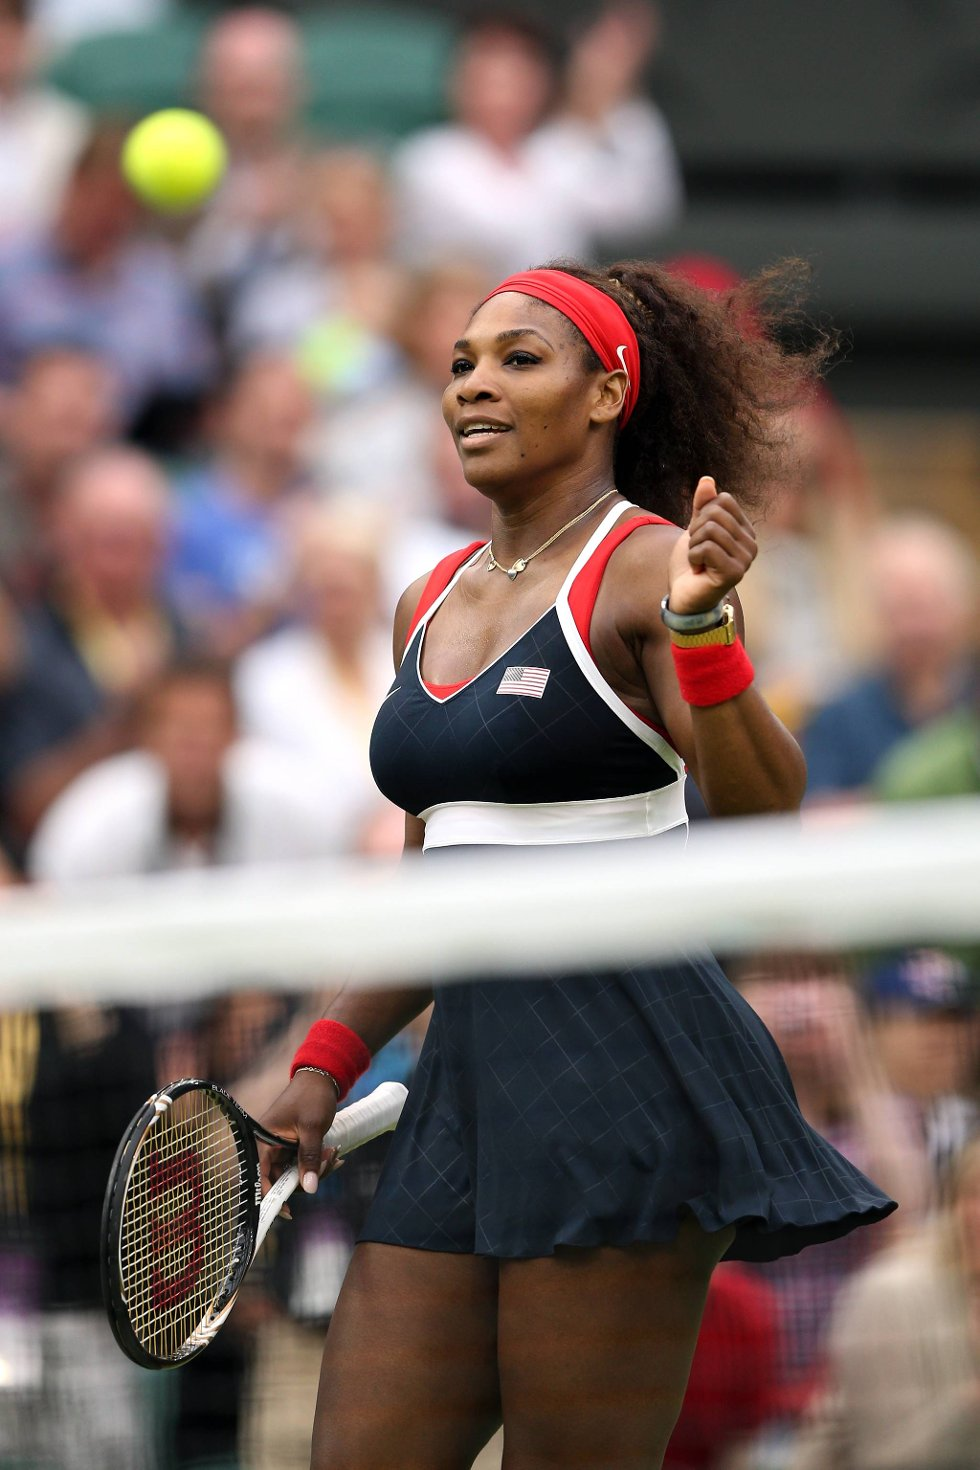 Serena Williams har toppet formen til OL, og har full kontroll på ballen. (Foto: Clive Brunskill, Getty Images/All Over Press/ANB)